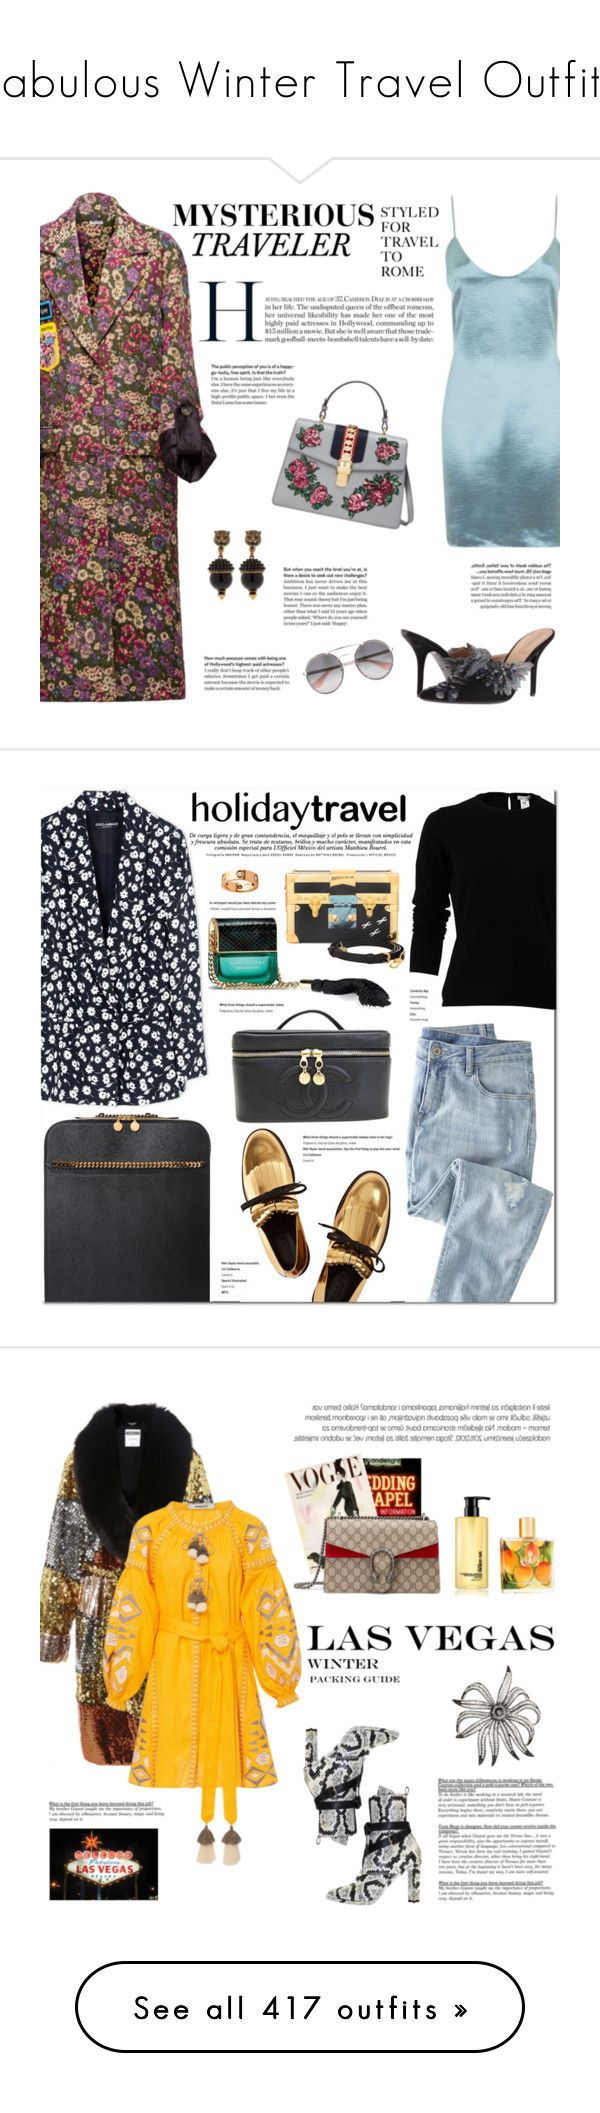 """""""Fabulous Winter Travel Outfits"""" by outfitsfortravel ❤ liked on Polyvore featuring travel, outfitsfortravel, Miu Miu, Glamorous, Gucci, Prada, Alberta Ferretti, Wrap, Marni and Dolce&Gabbana"""